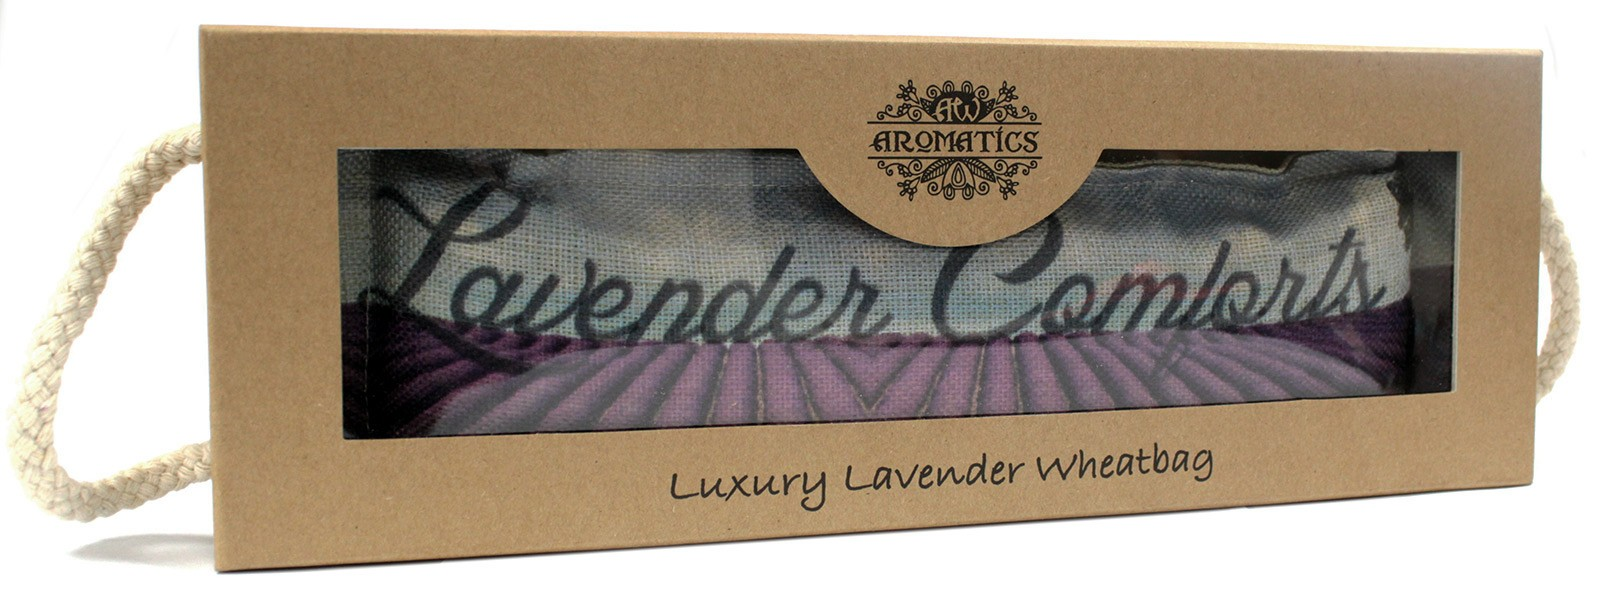 Luxury Lavender Wheat Bag in Gift Box Lavender Comforts